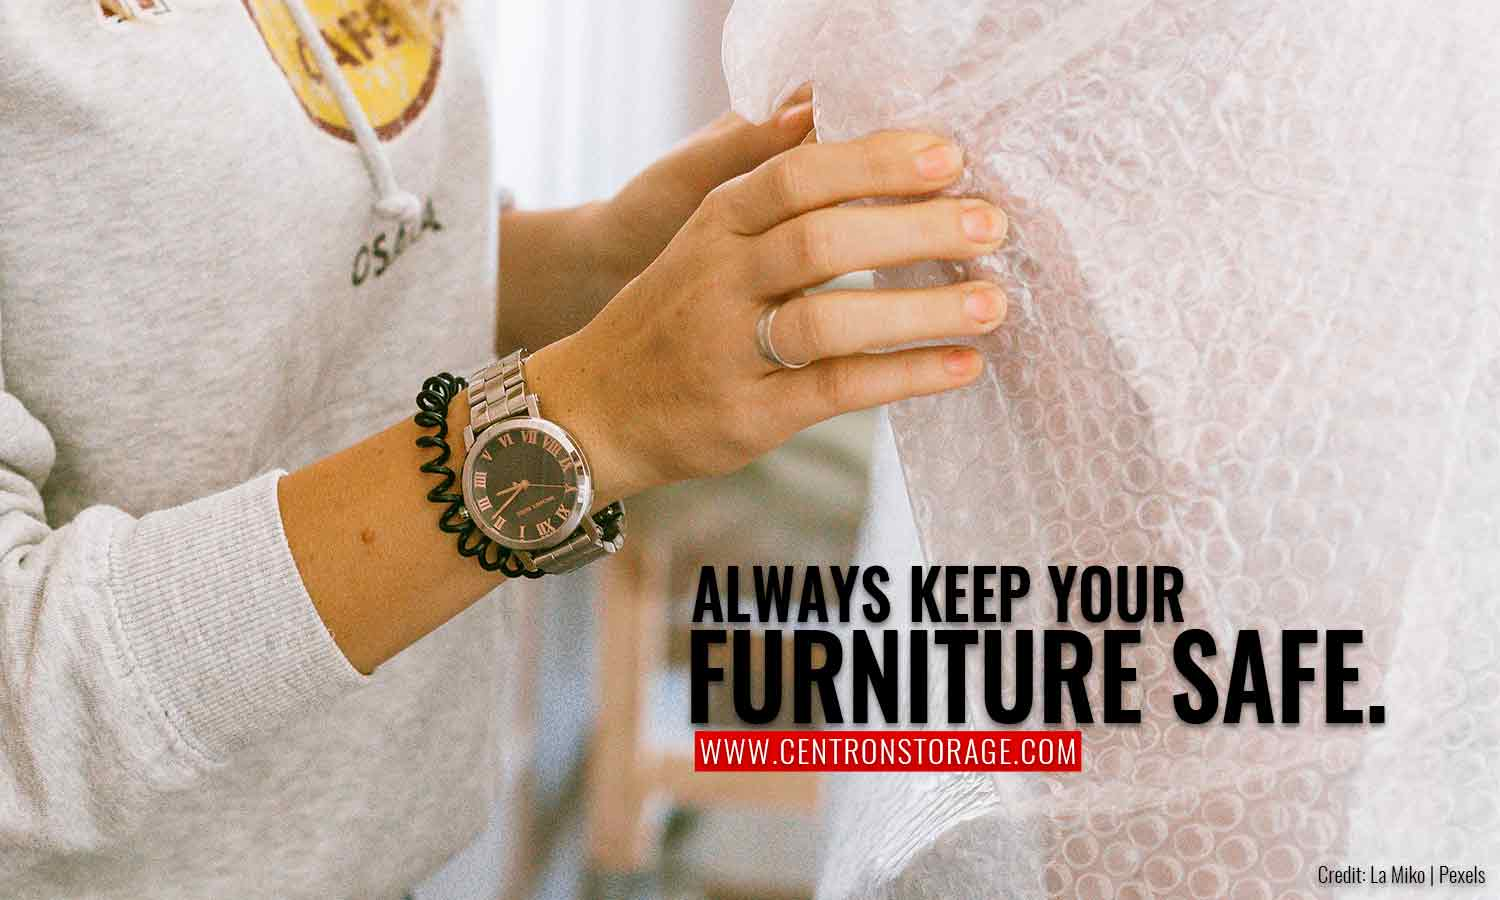 Always keep your furniture safe.